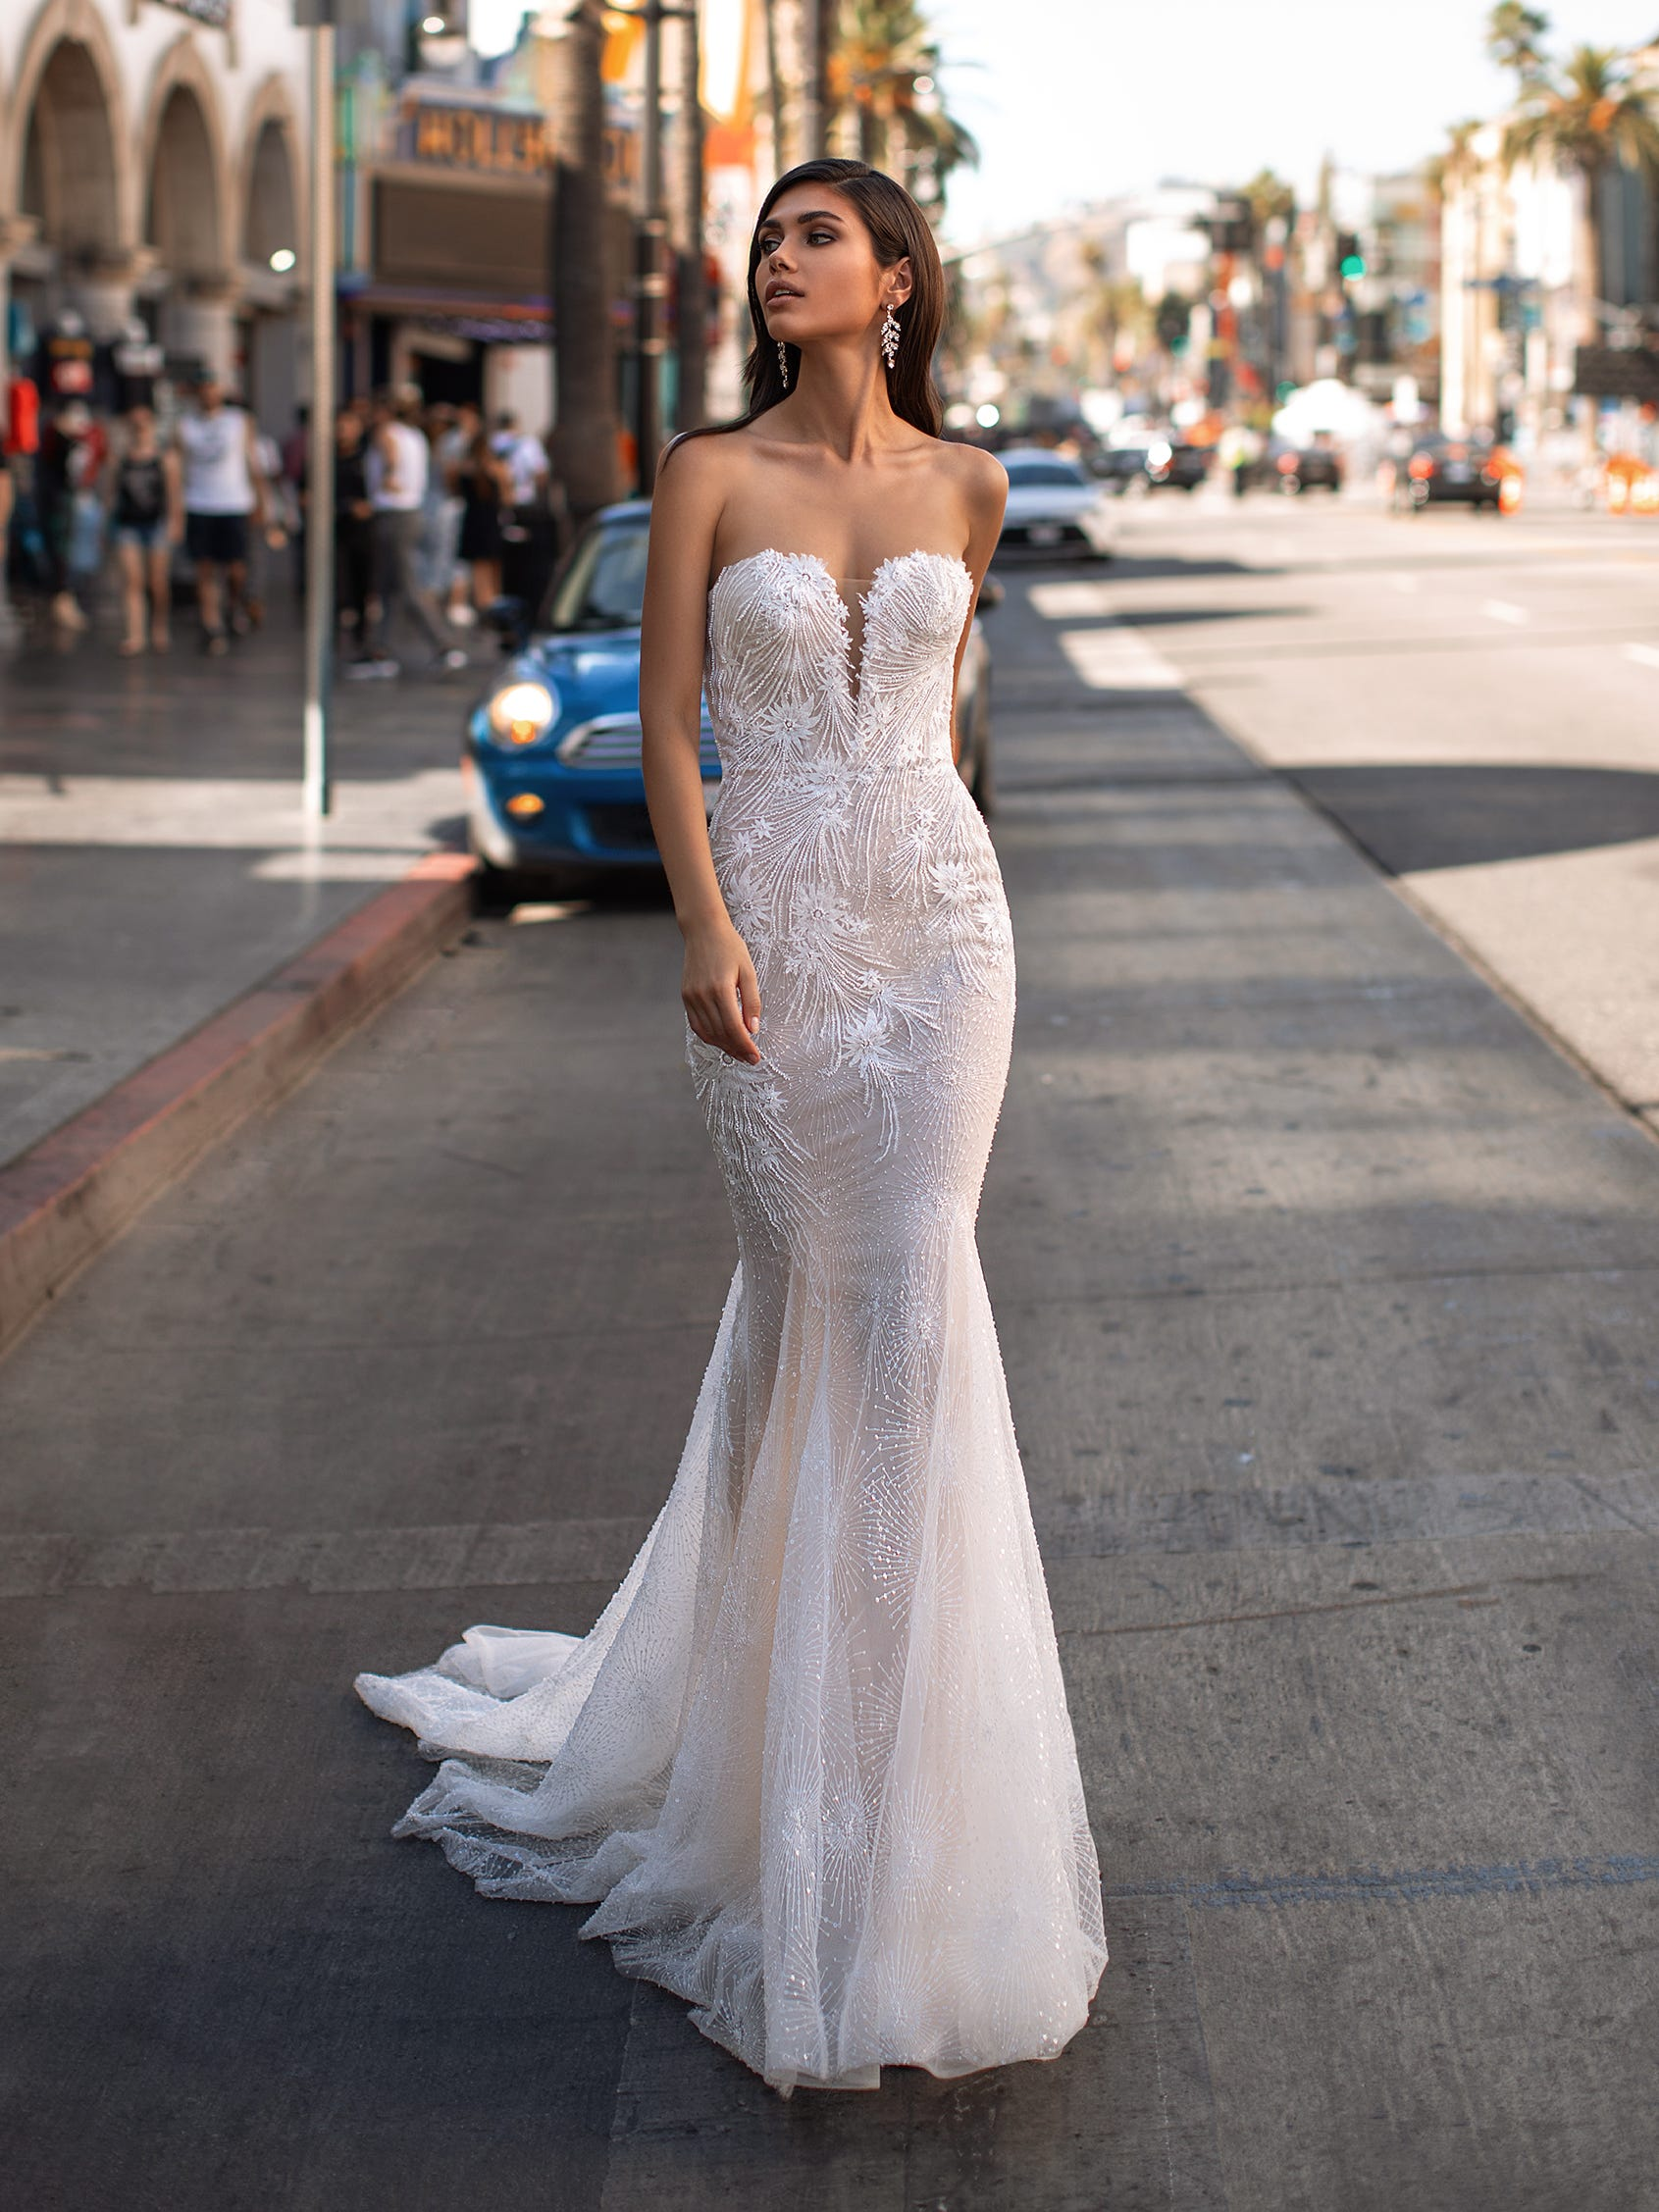 The Convertible Wedding Dress Yes It S A Thing Pronovias